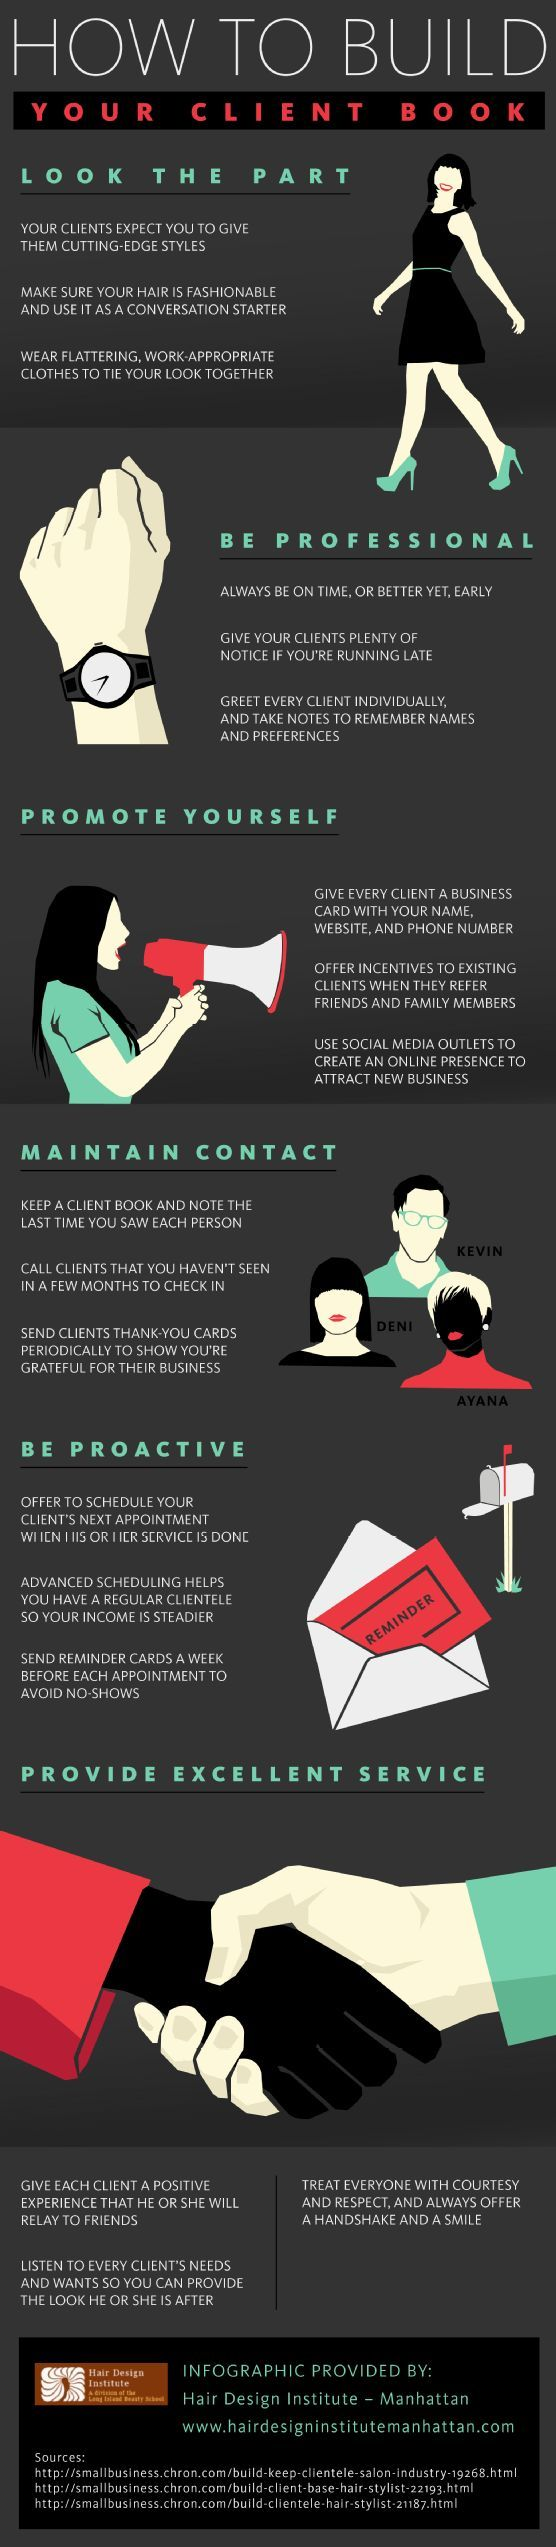 Get More Hair Salon Clients ... How to Build Your Client Book Infographic. #hairbiz #cosmetology www.OneMorePress.com